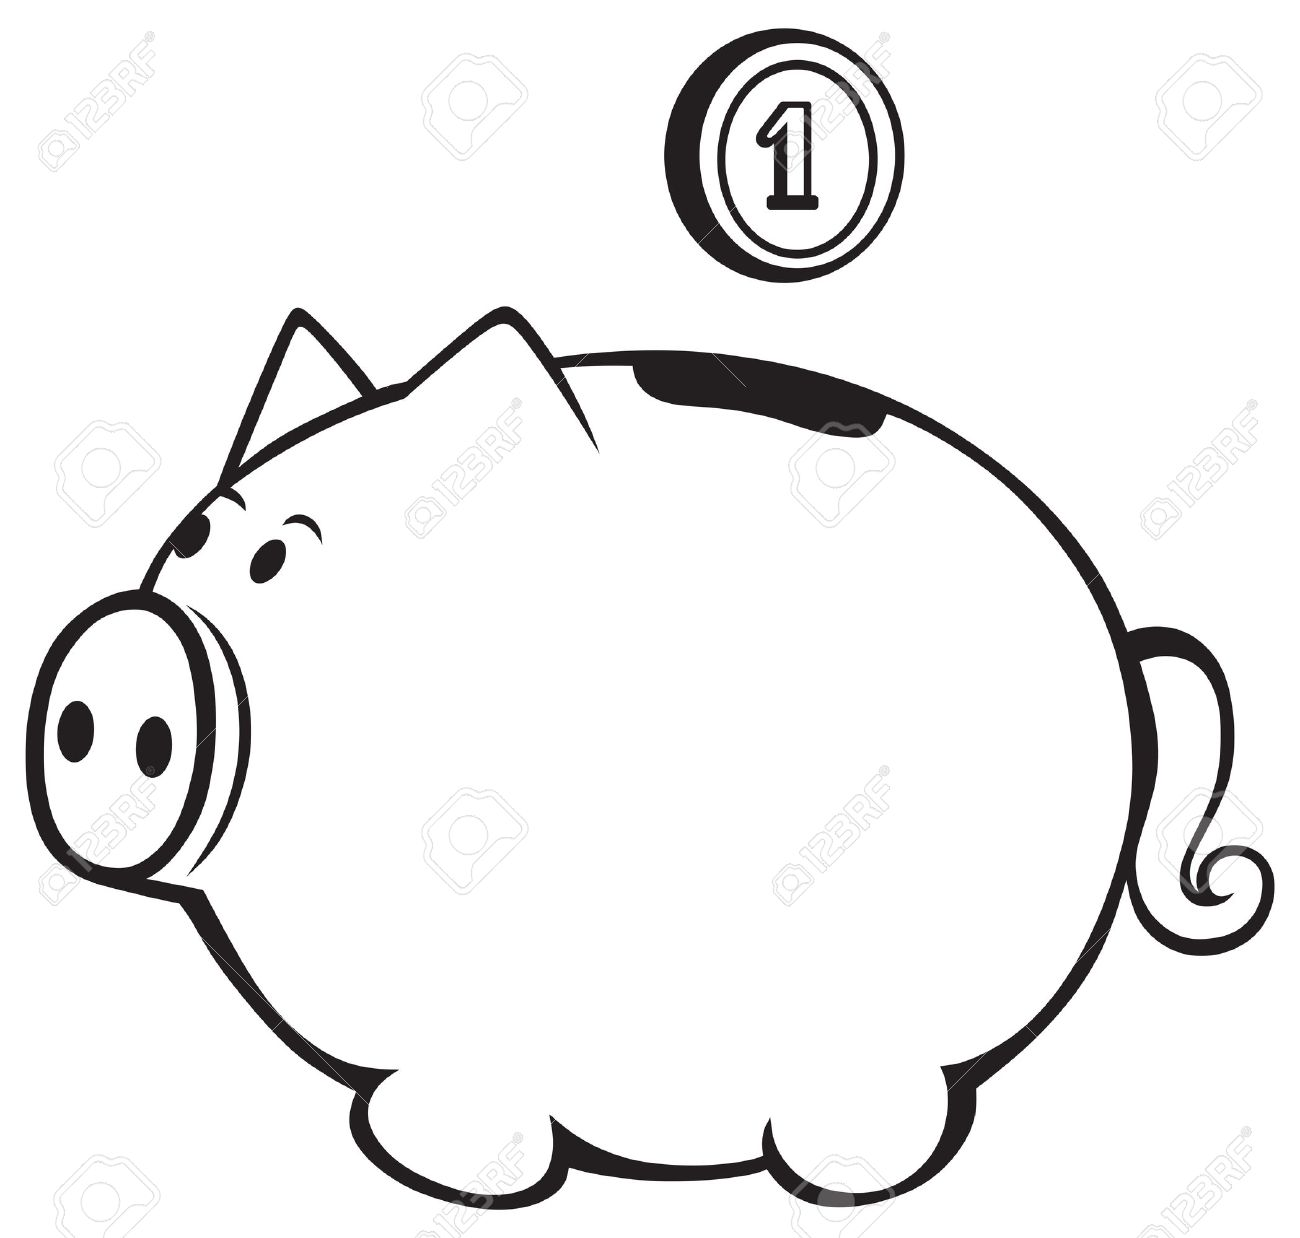 Black and white piggy bank clipart clip art stock Piggy Bank Isolated On White Royalty Free Cliparts, Vectors, And ... clip art stock